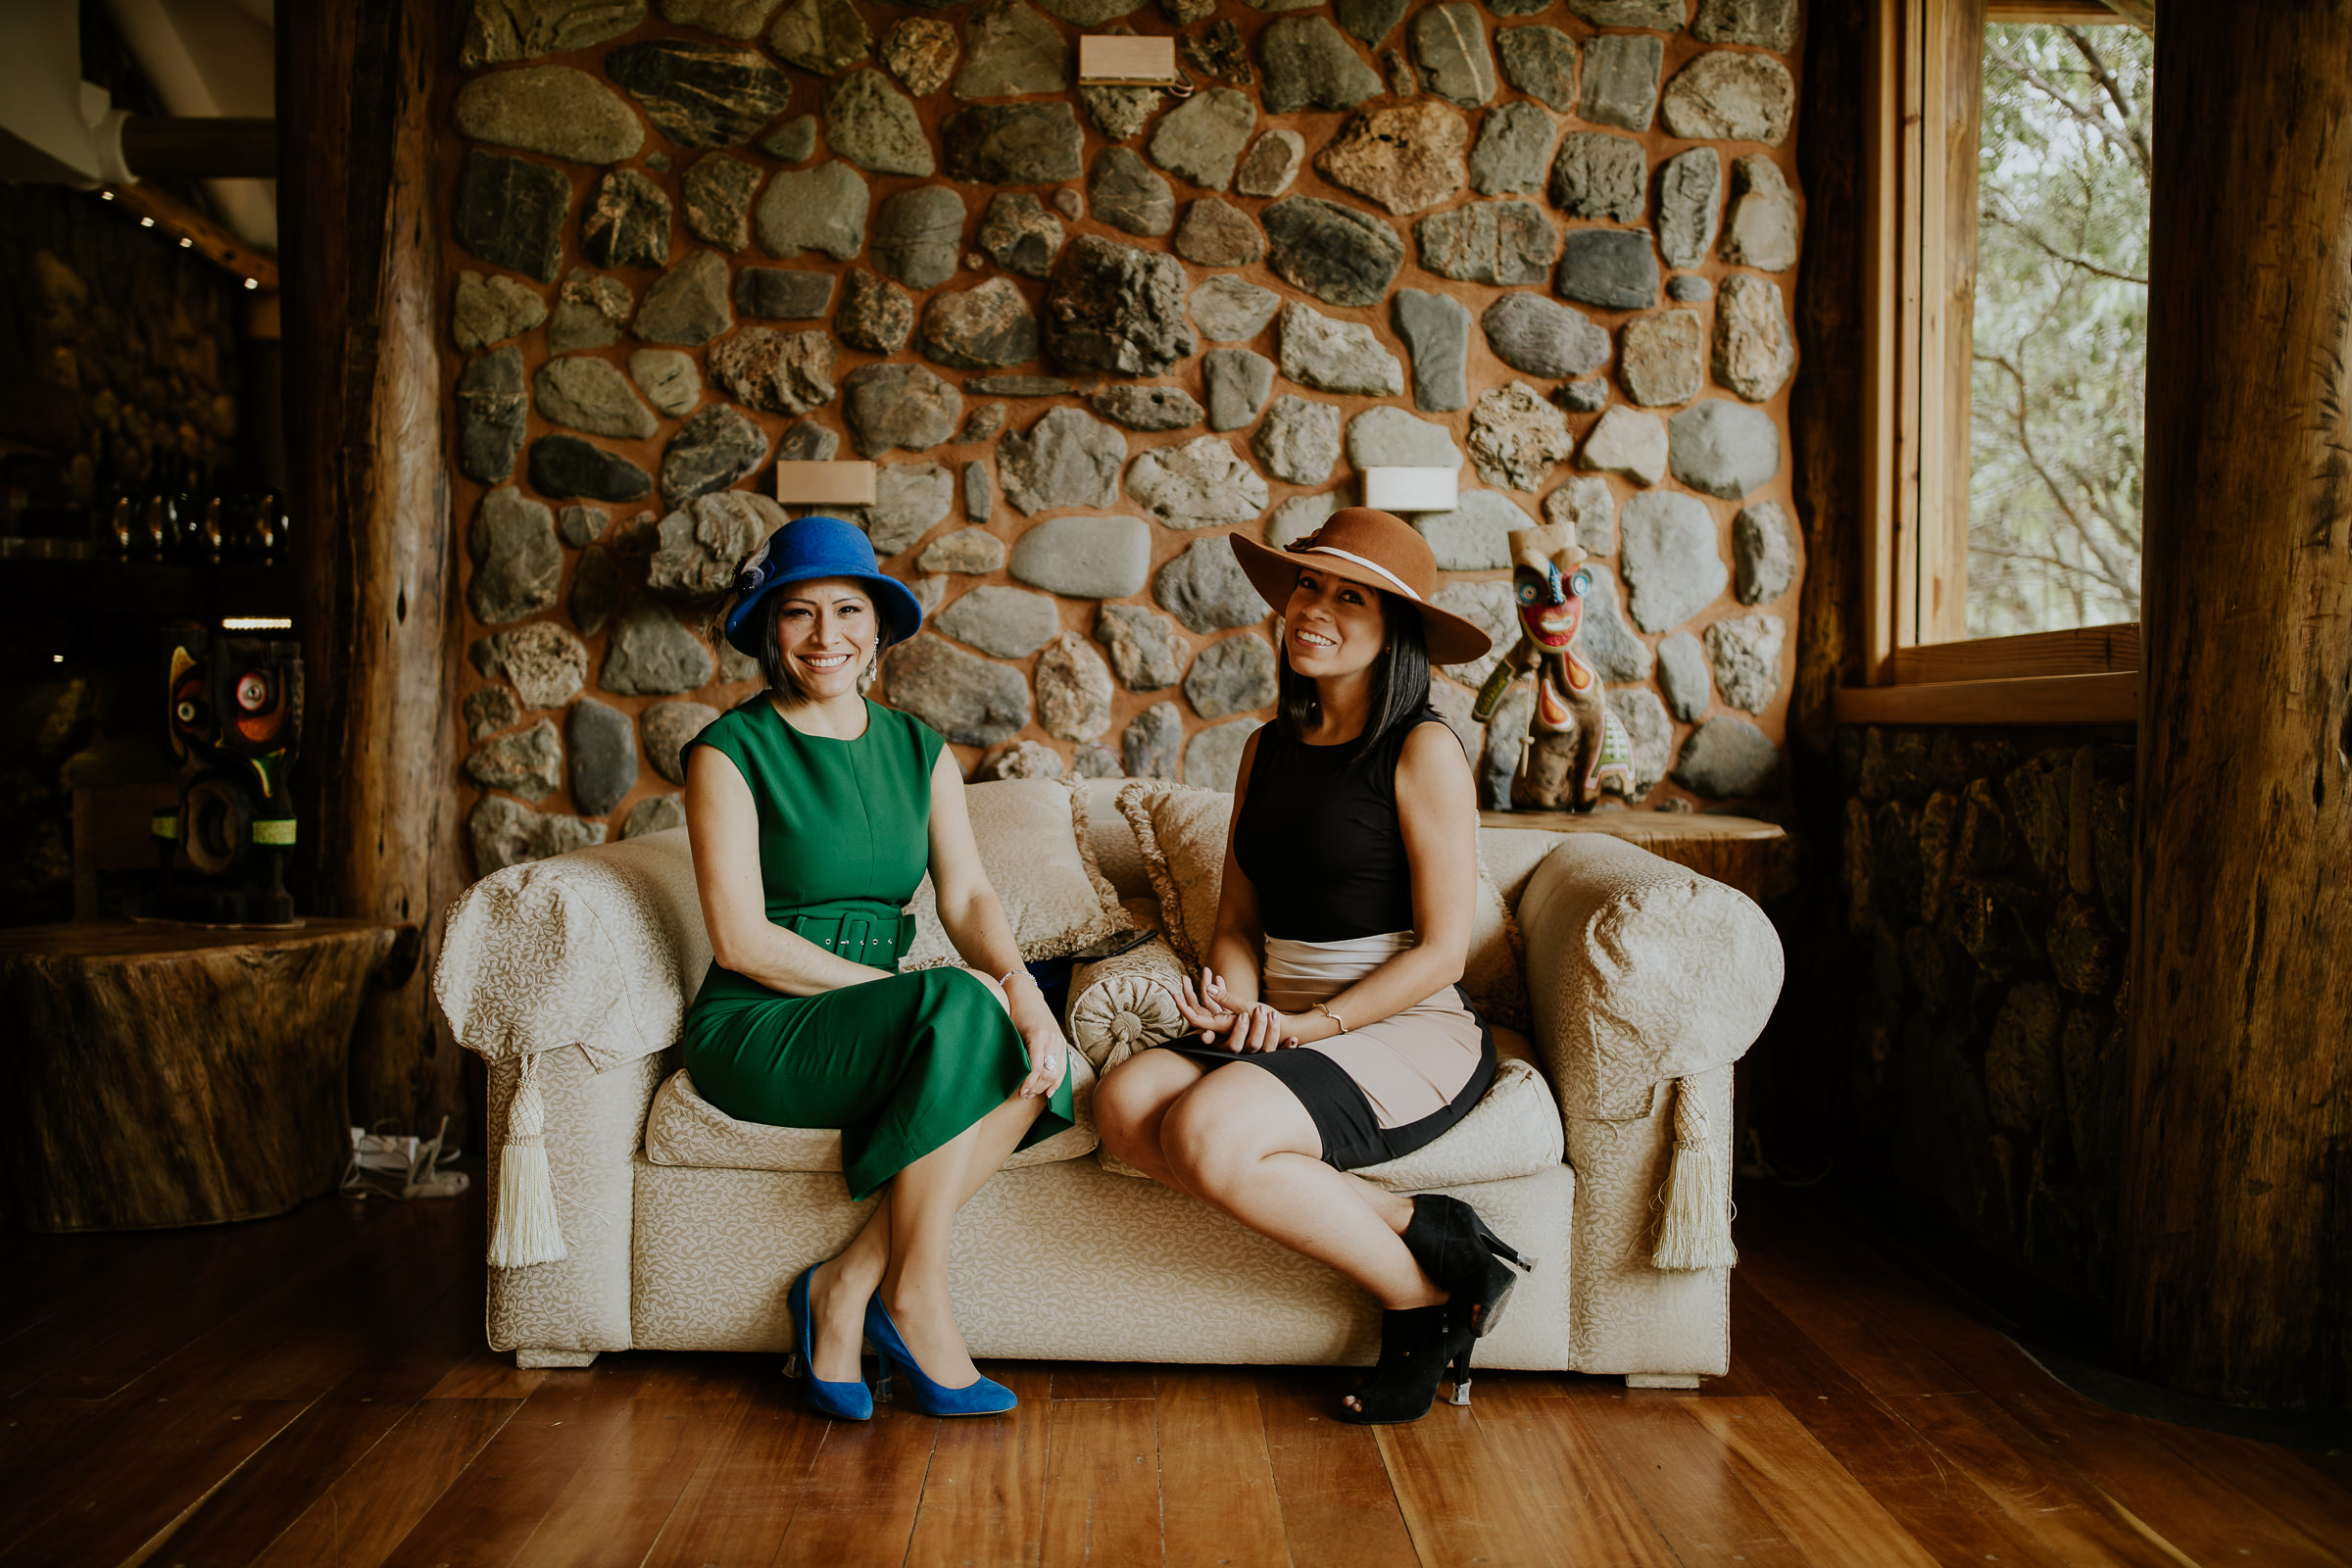 two women on a sofa with hats